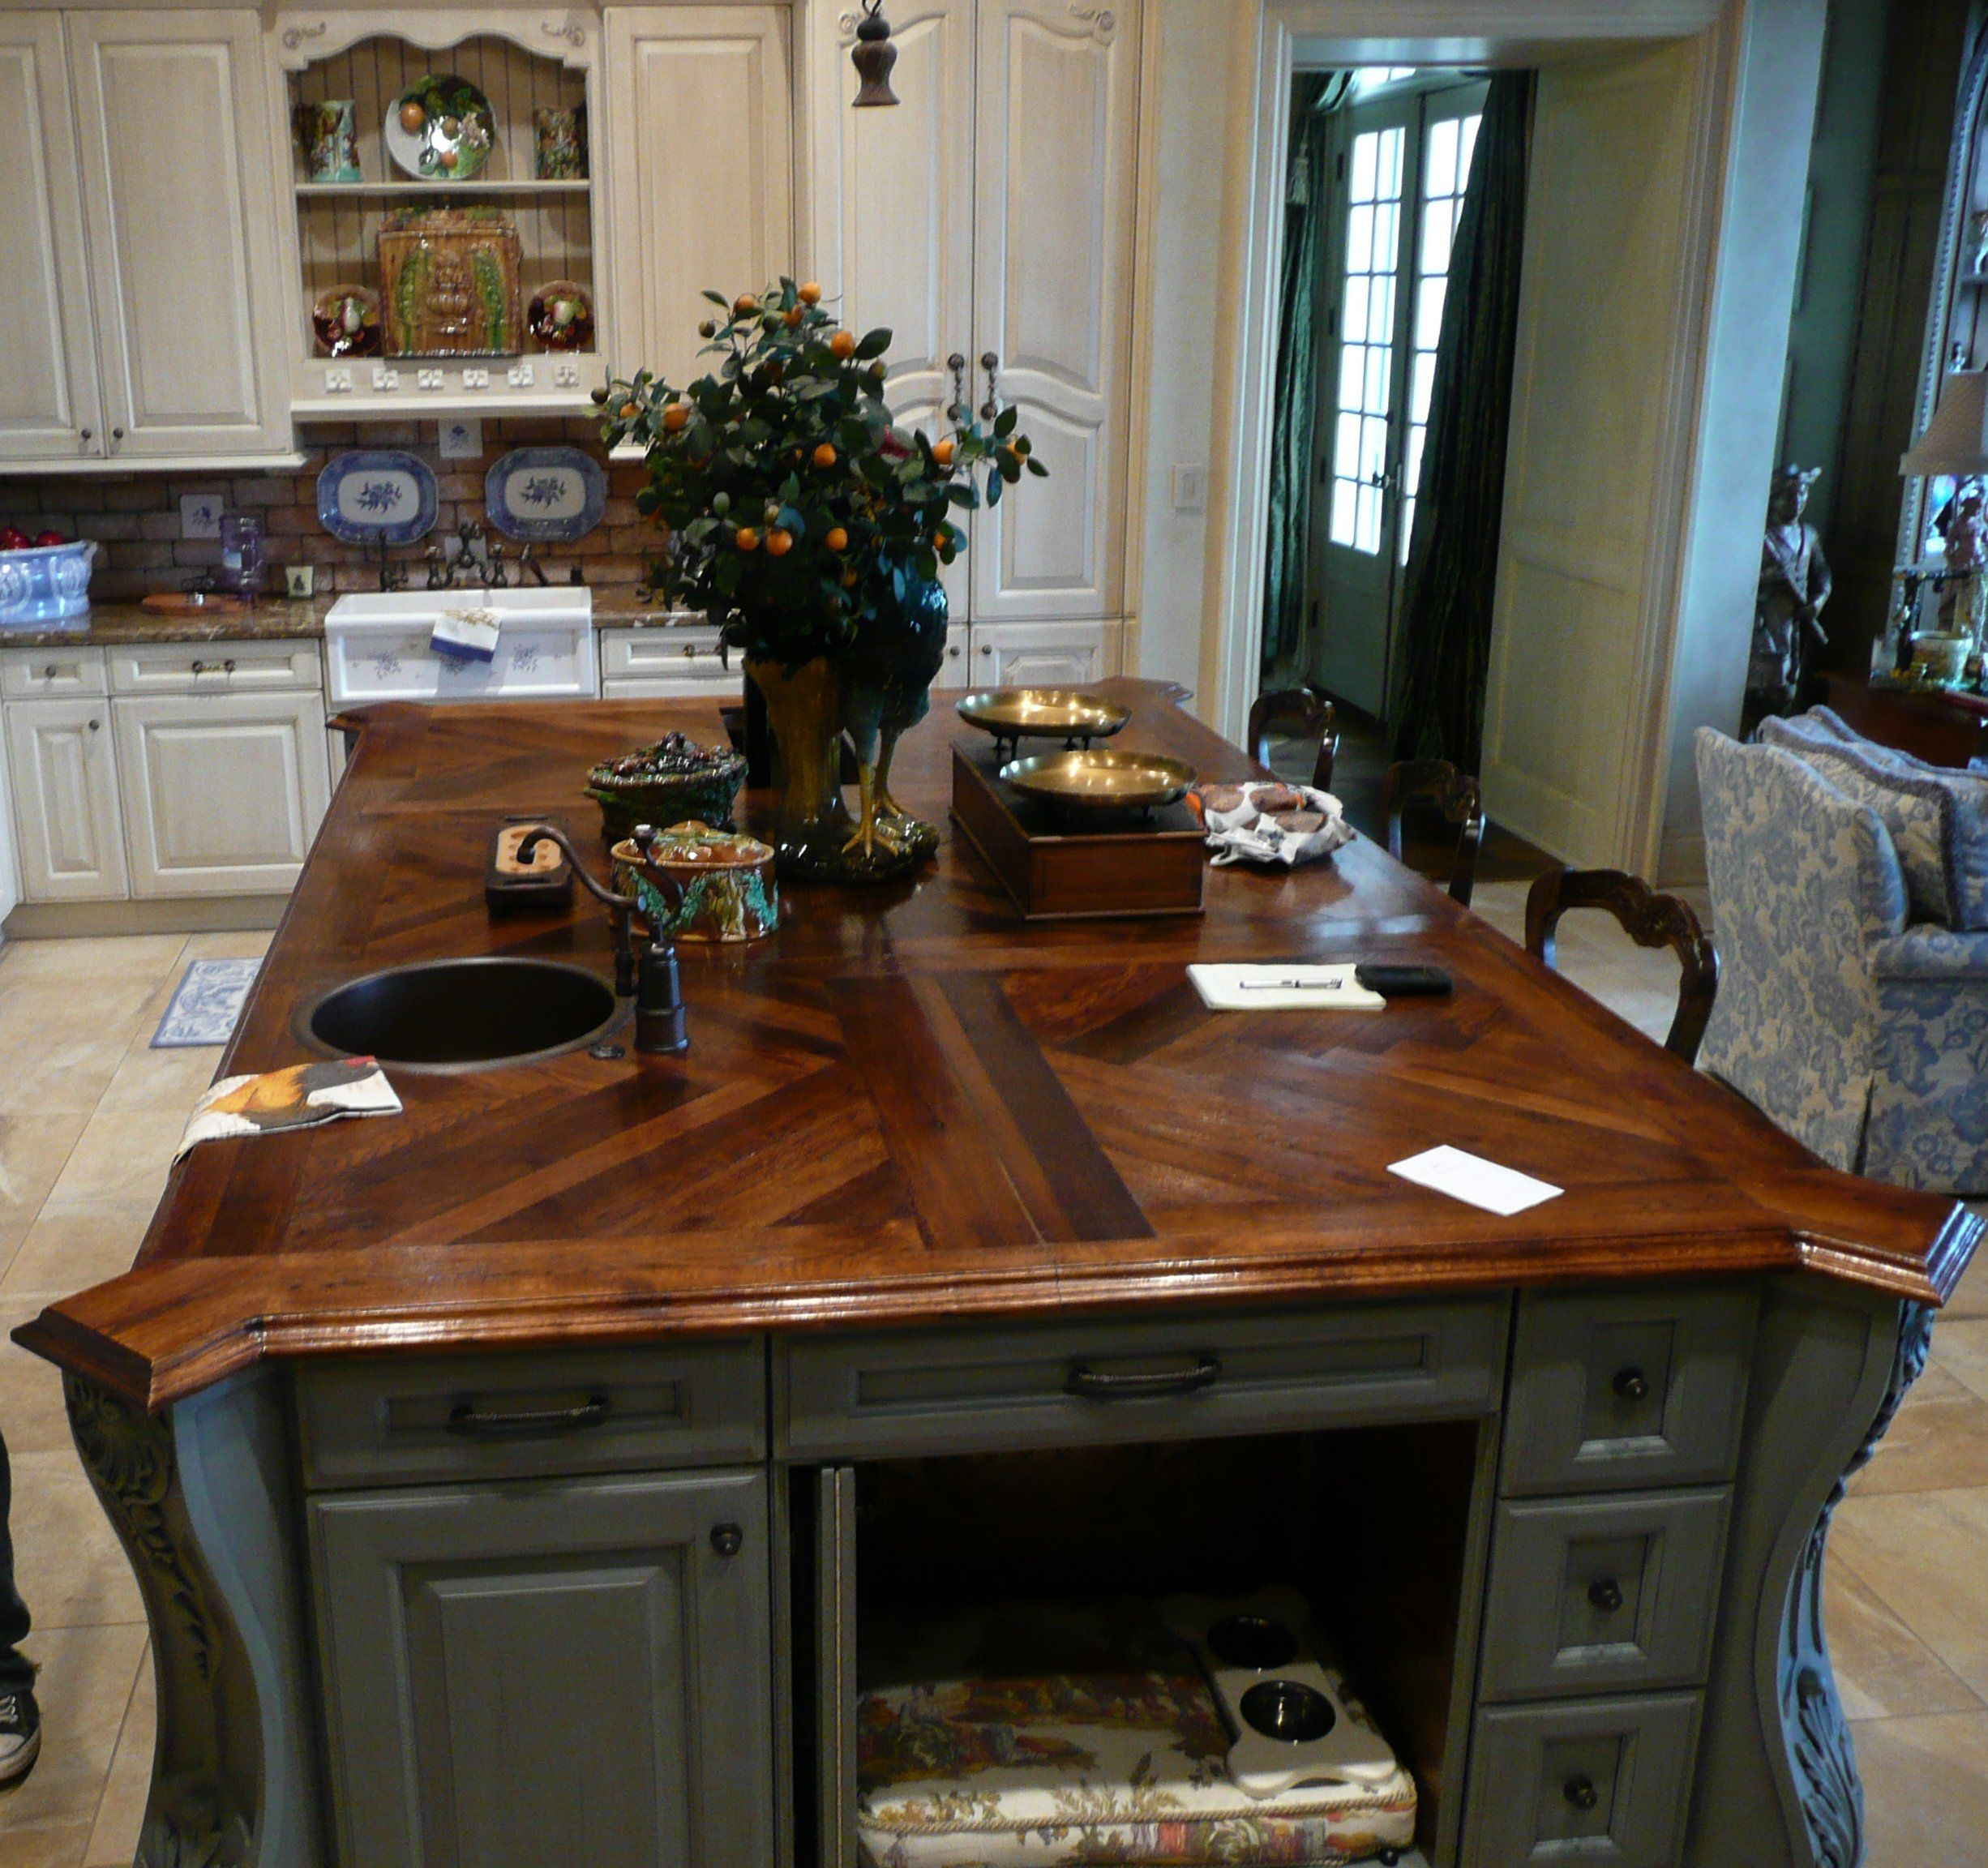 White Oak Wood Countertop Photo Gallery White Oak Wood Wood